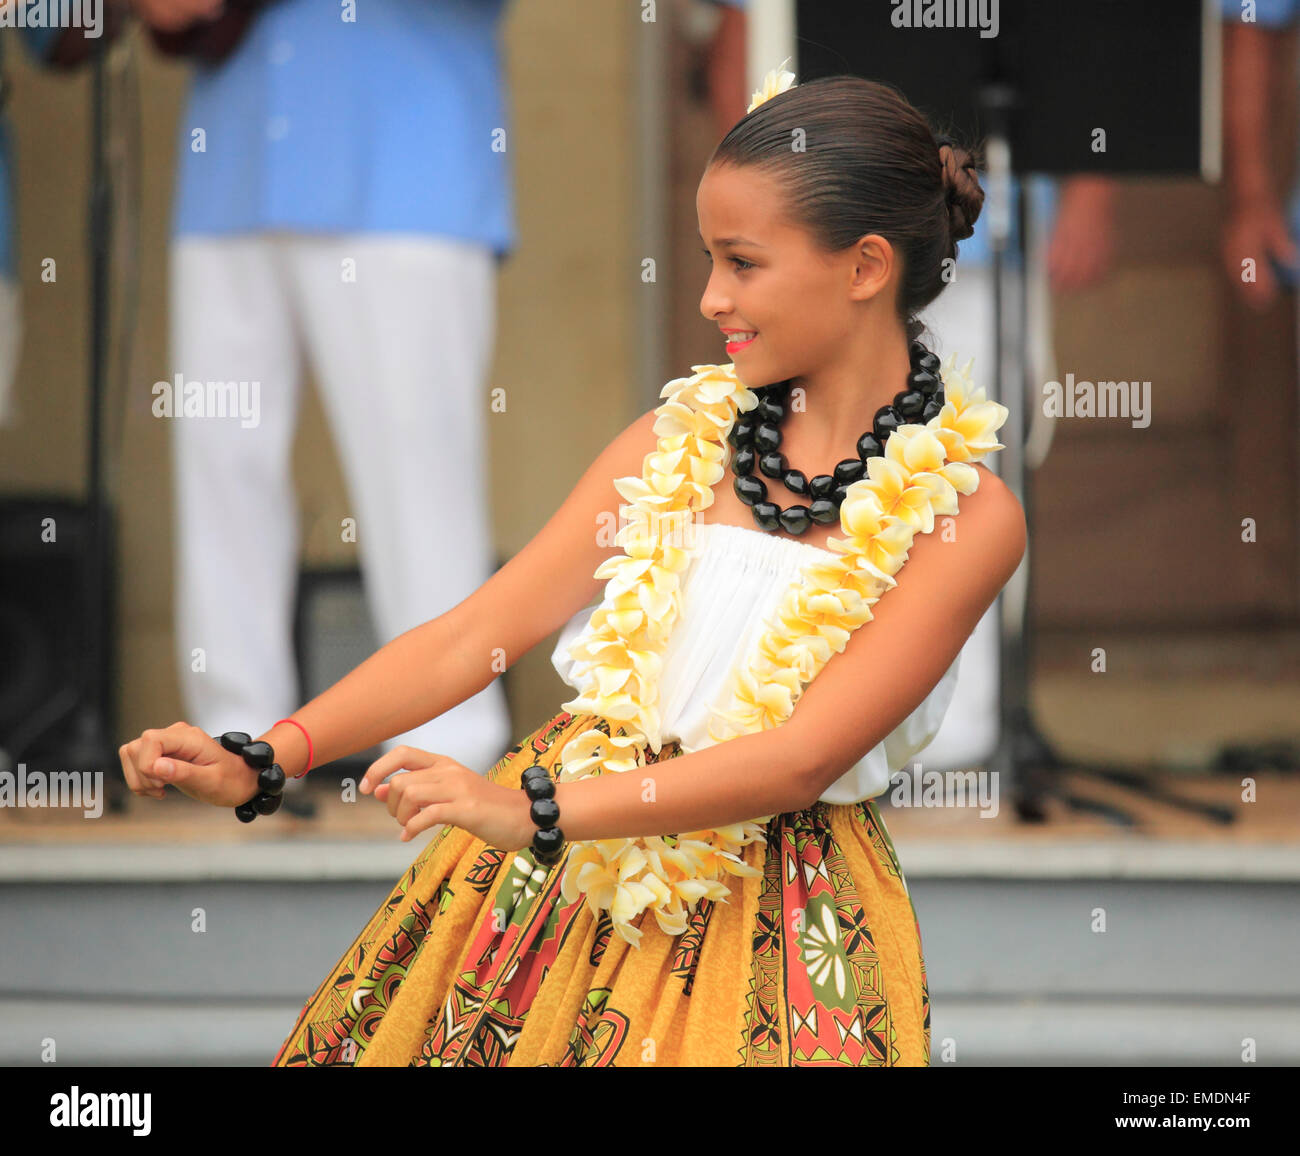 Hawaii, Big Island, Kailua-Kona, hula show, dancer, - Stock Image